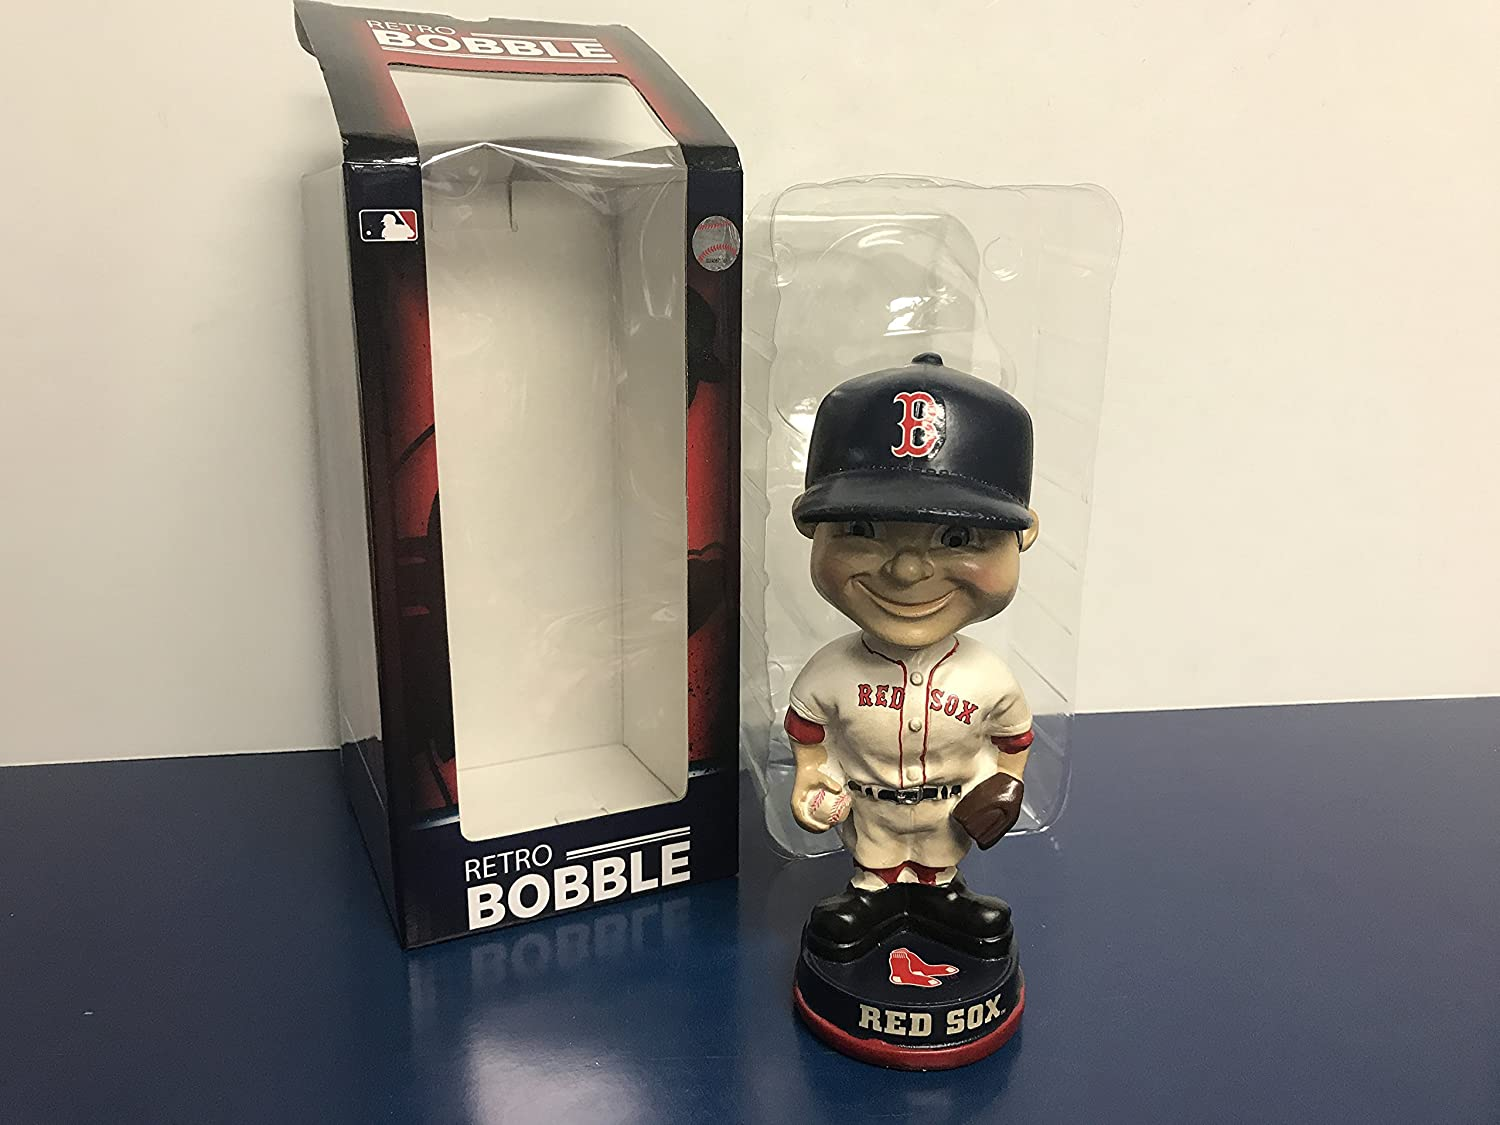 Boston Red Sox RETRO Boy Face Bobble Bobblehead MLB Baseball